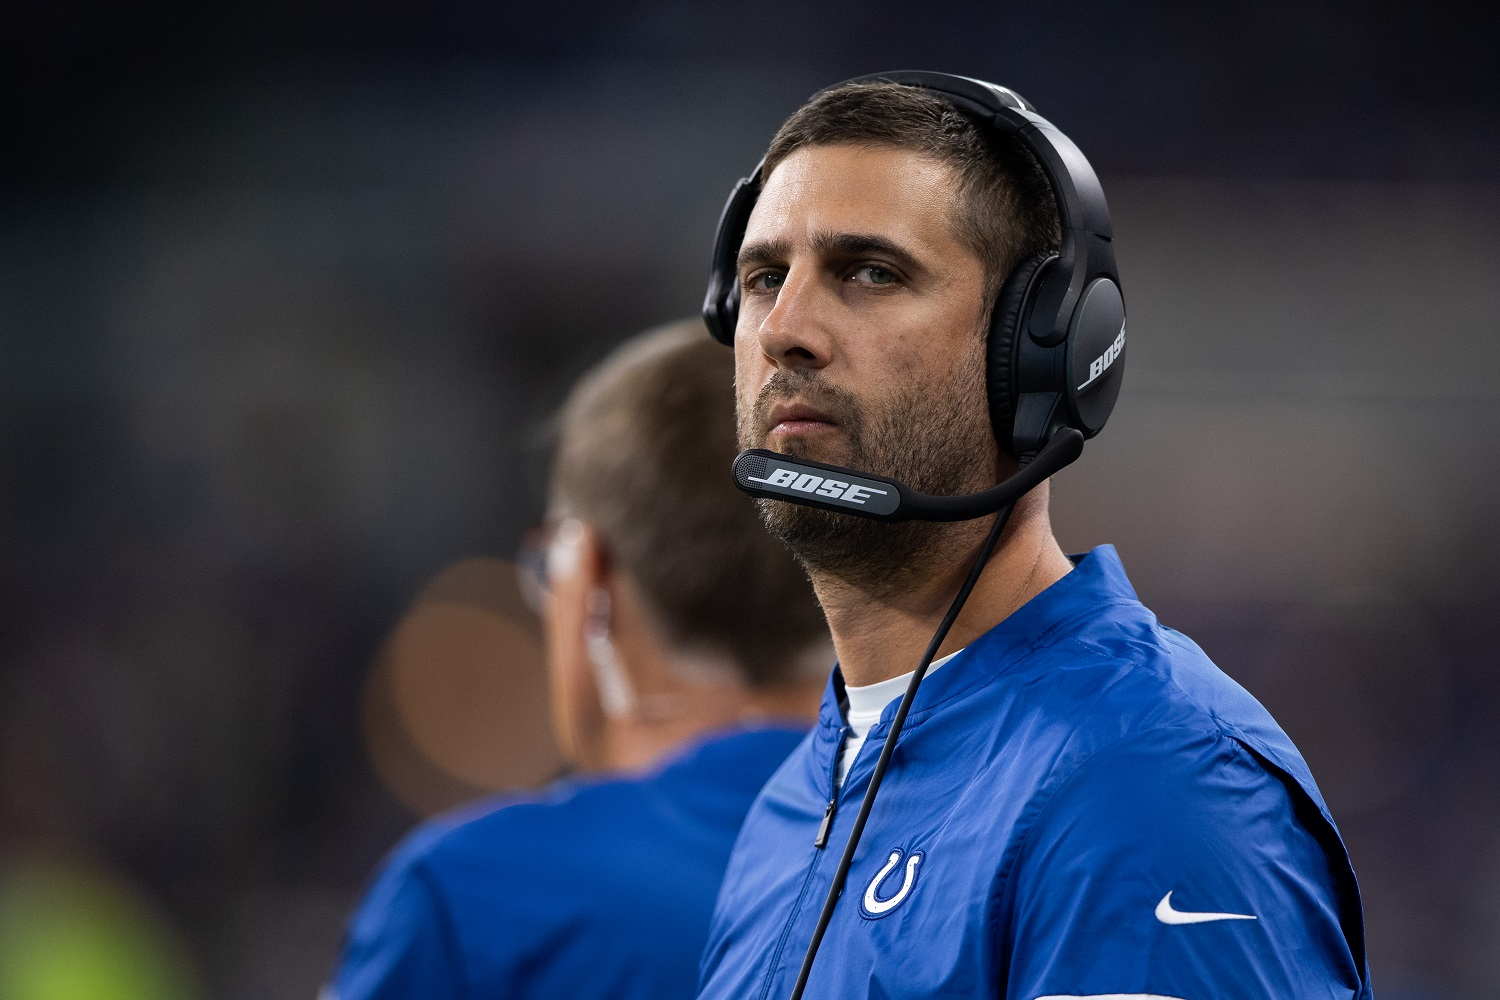 The Philadelphia Eagles hired third-year Indianapolis Colts offensive coordinator Nick Sirianni to replace Doug Pederson as their head coach. | Zach Bolinger/Icon Sportswire via Getty Images